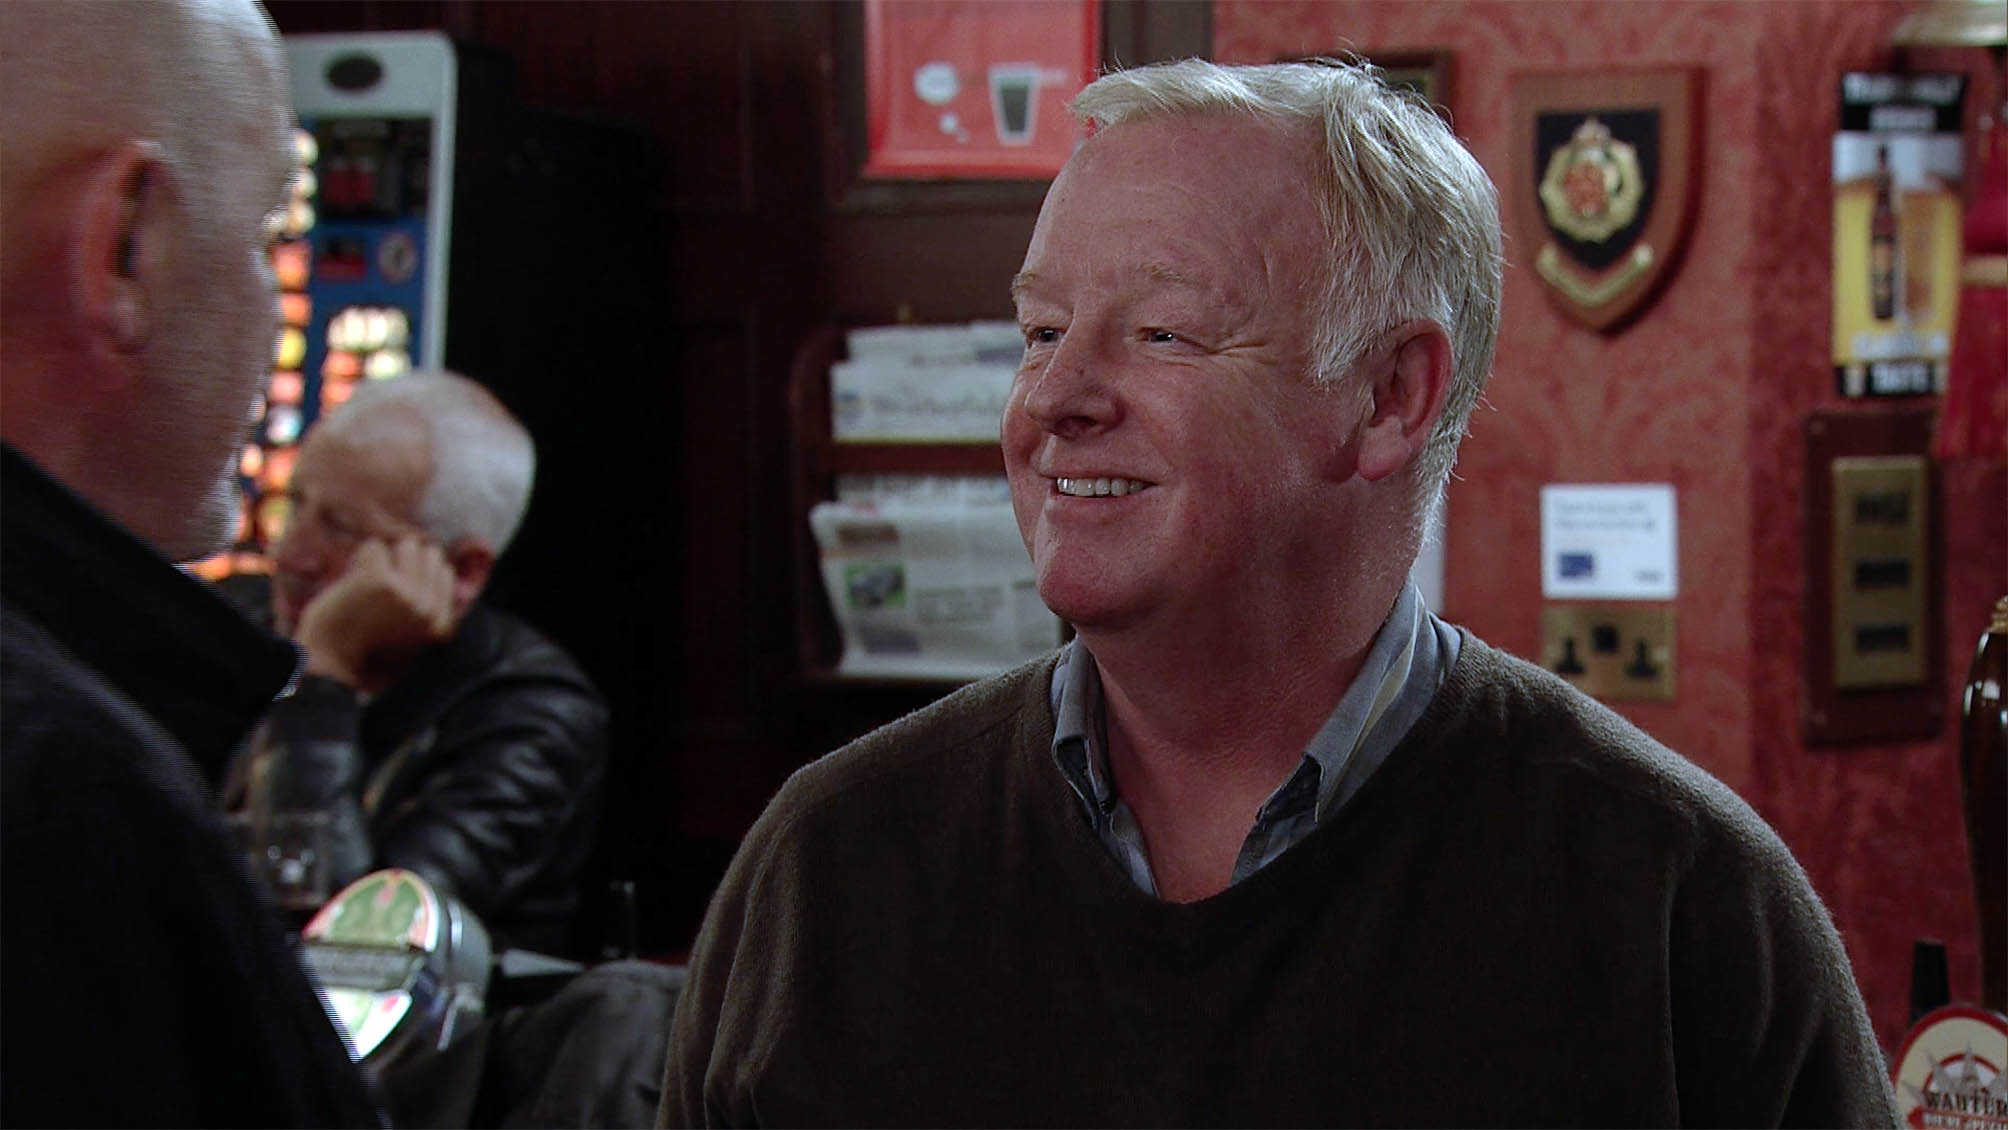 FROM ITV STRICT EMBARGO Monday 1 November 2016 Coronation Street - Ep 9032 Thursday November 2016 In the Rovers Freddie suggests a game of rummy but soon finds himself railroaded into playing poker with Phelan in a manner which alters the visual appearance of the person photographed deemed detrimental or inappropriate by ITV plc Picture Desk. This photograph must not be syndicated to any other company, publication or website, or permanently archived, without the express written permission of ITV Plc Picture Desk. Full Terms and conditions are available on the website www.itvpictures.com